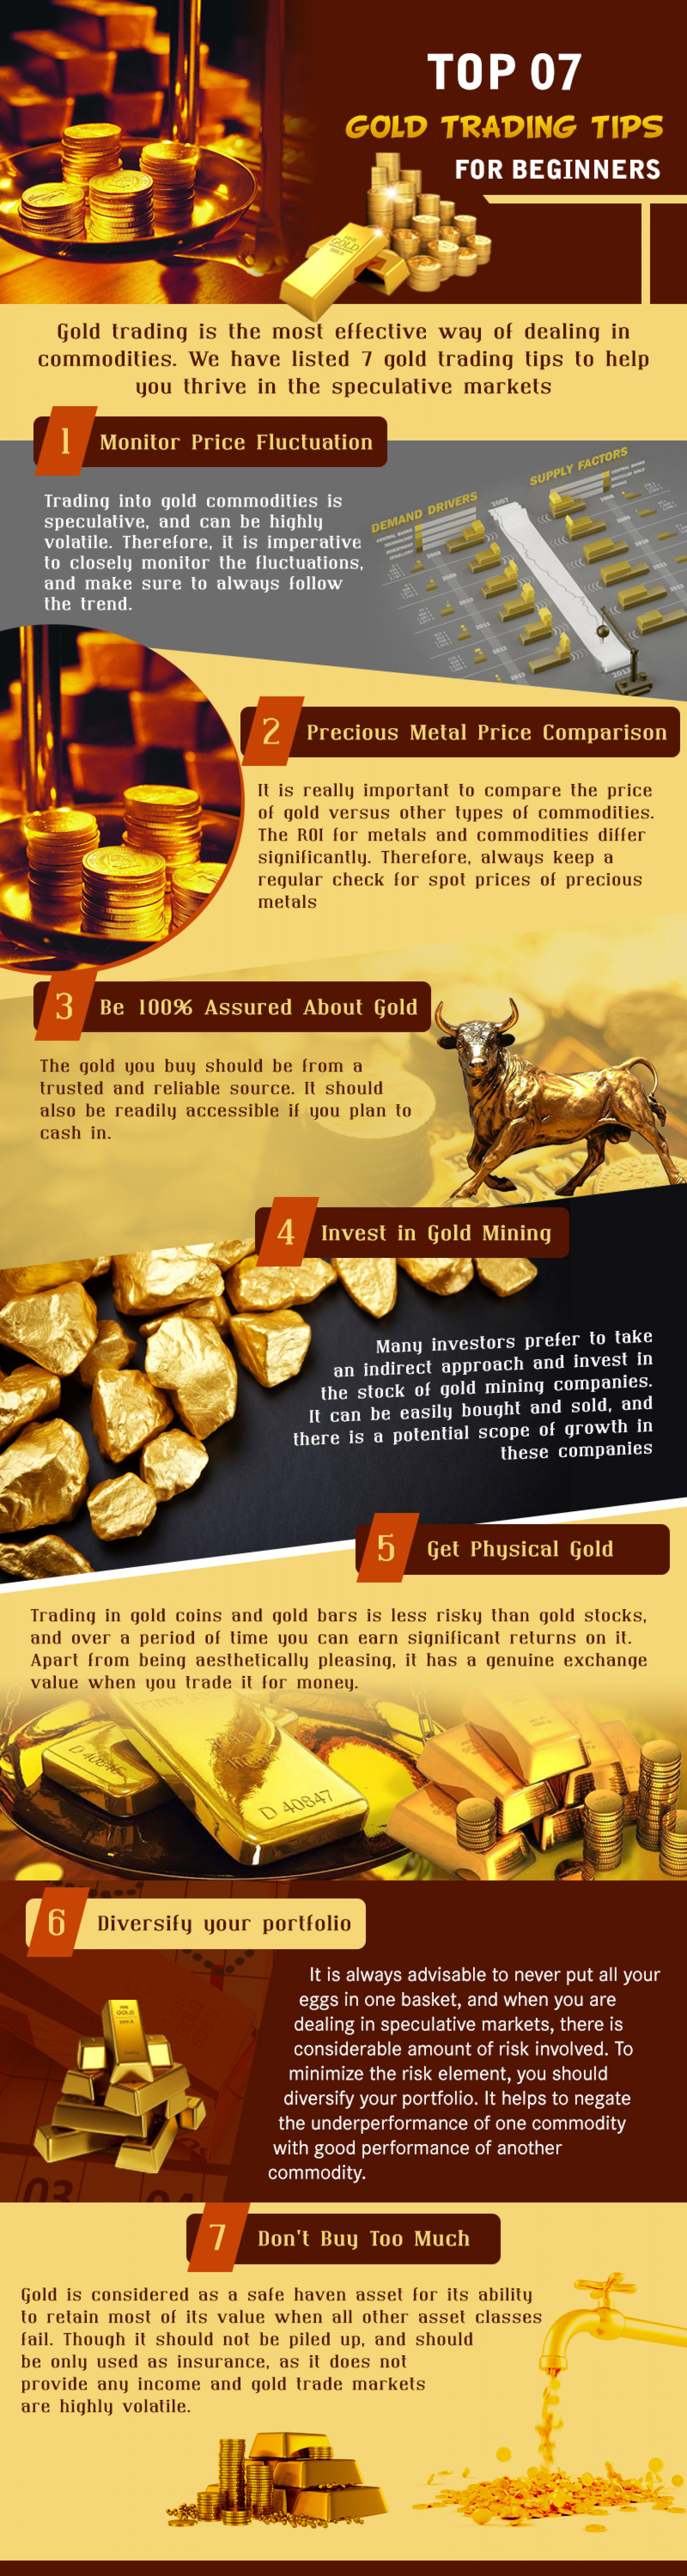 Top 07 Gold Trading Tips for Beginners Infographic